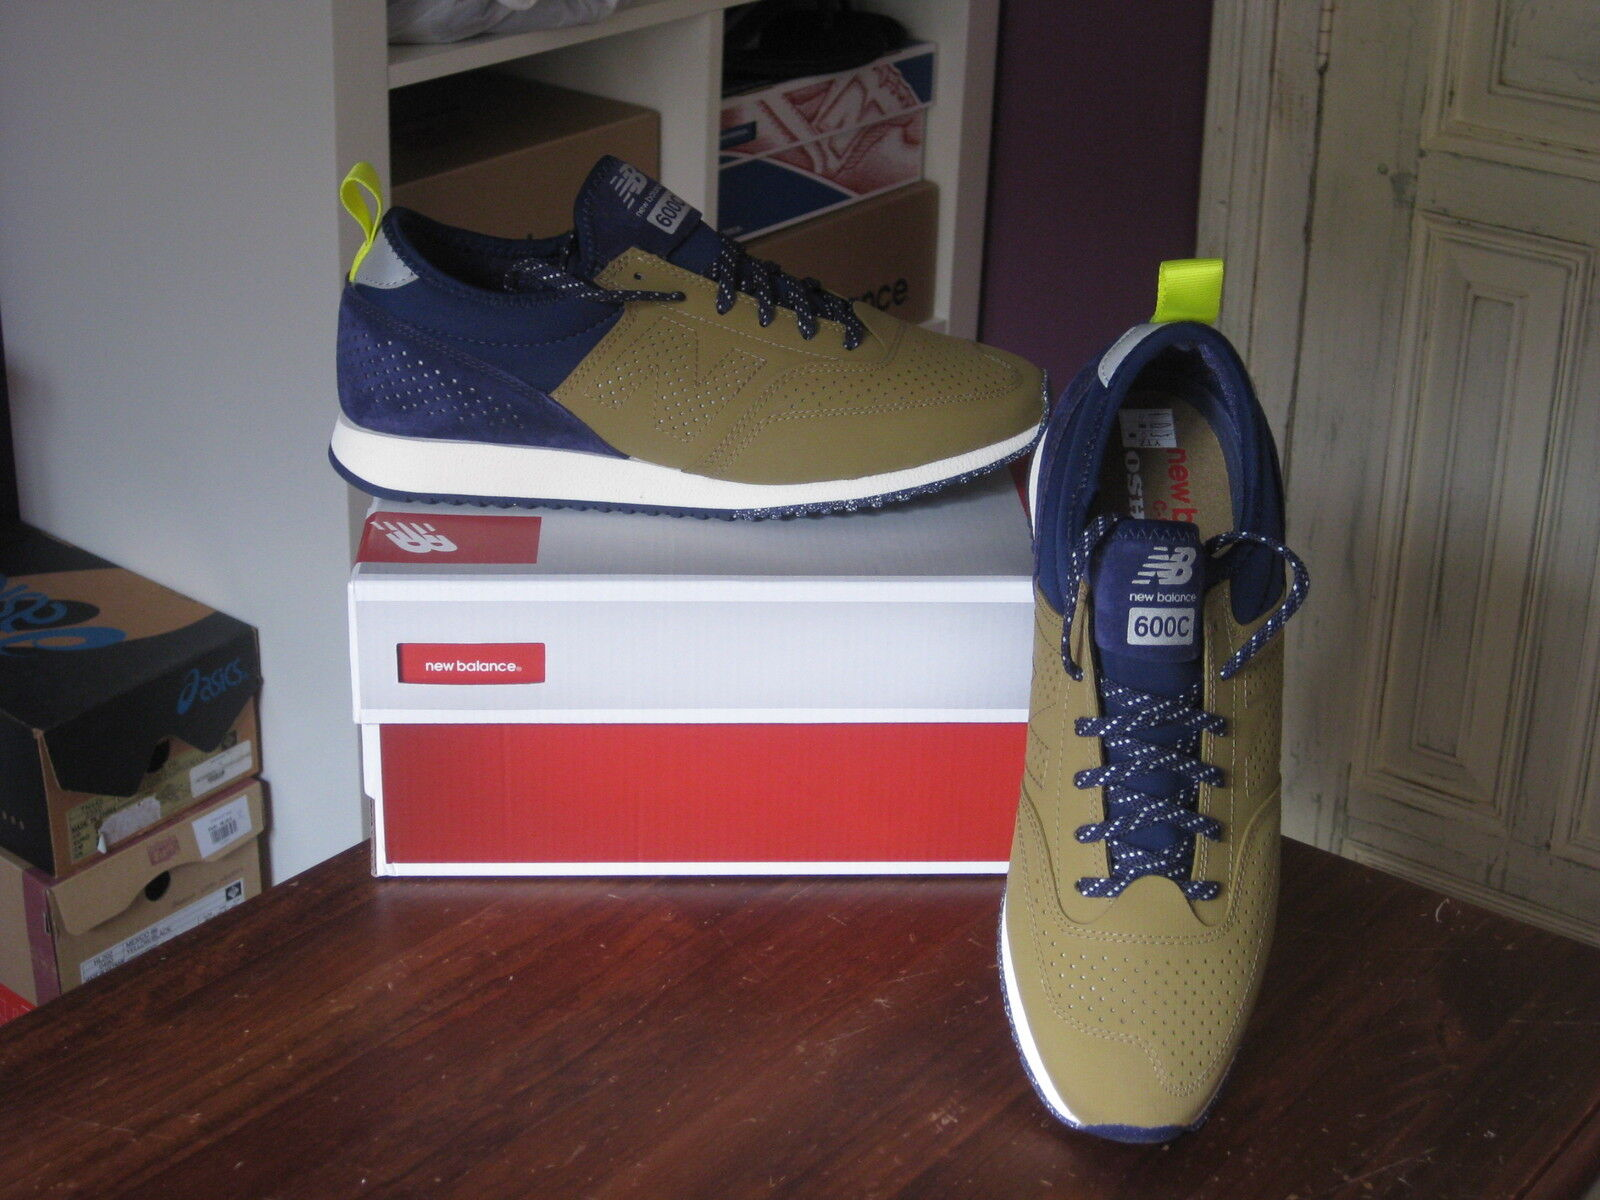 nouveau   cm600cbp paniers by oshhomme's japan uk8 limited chaussures